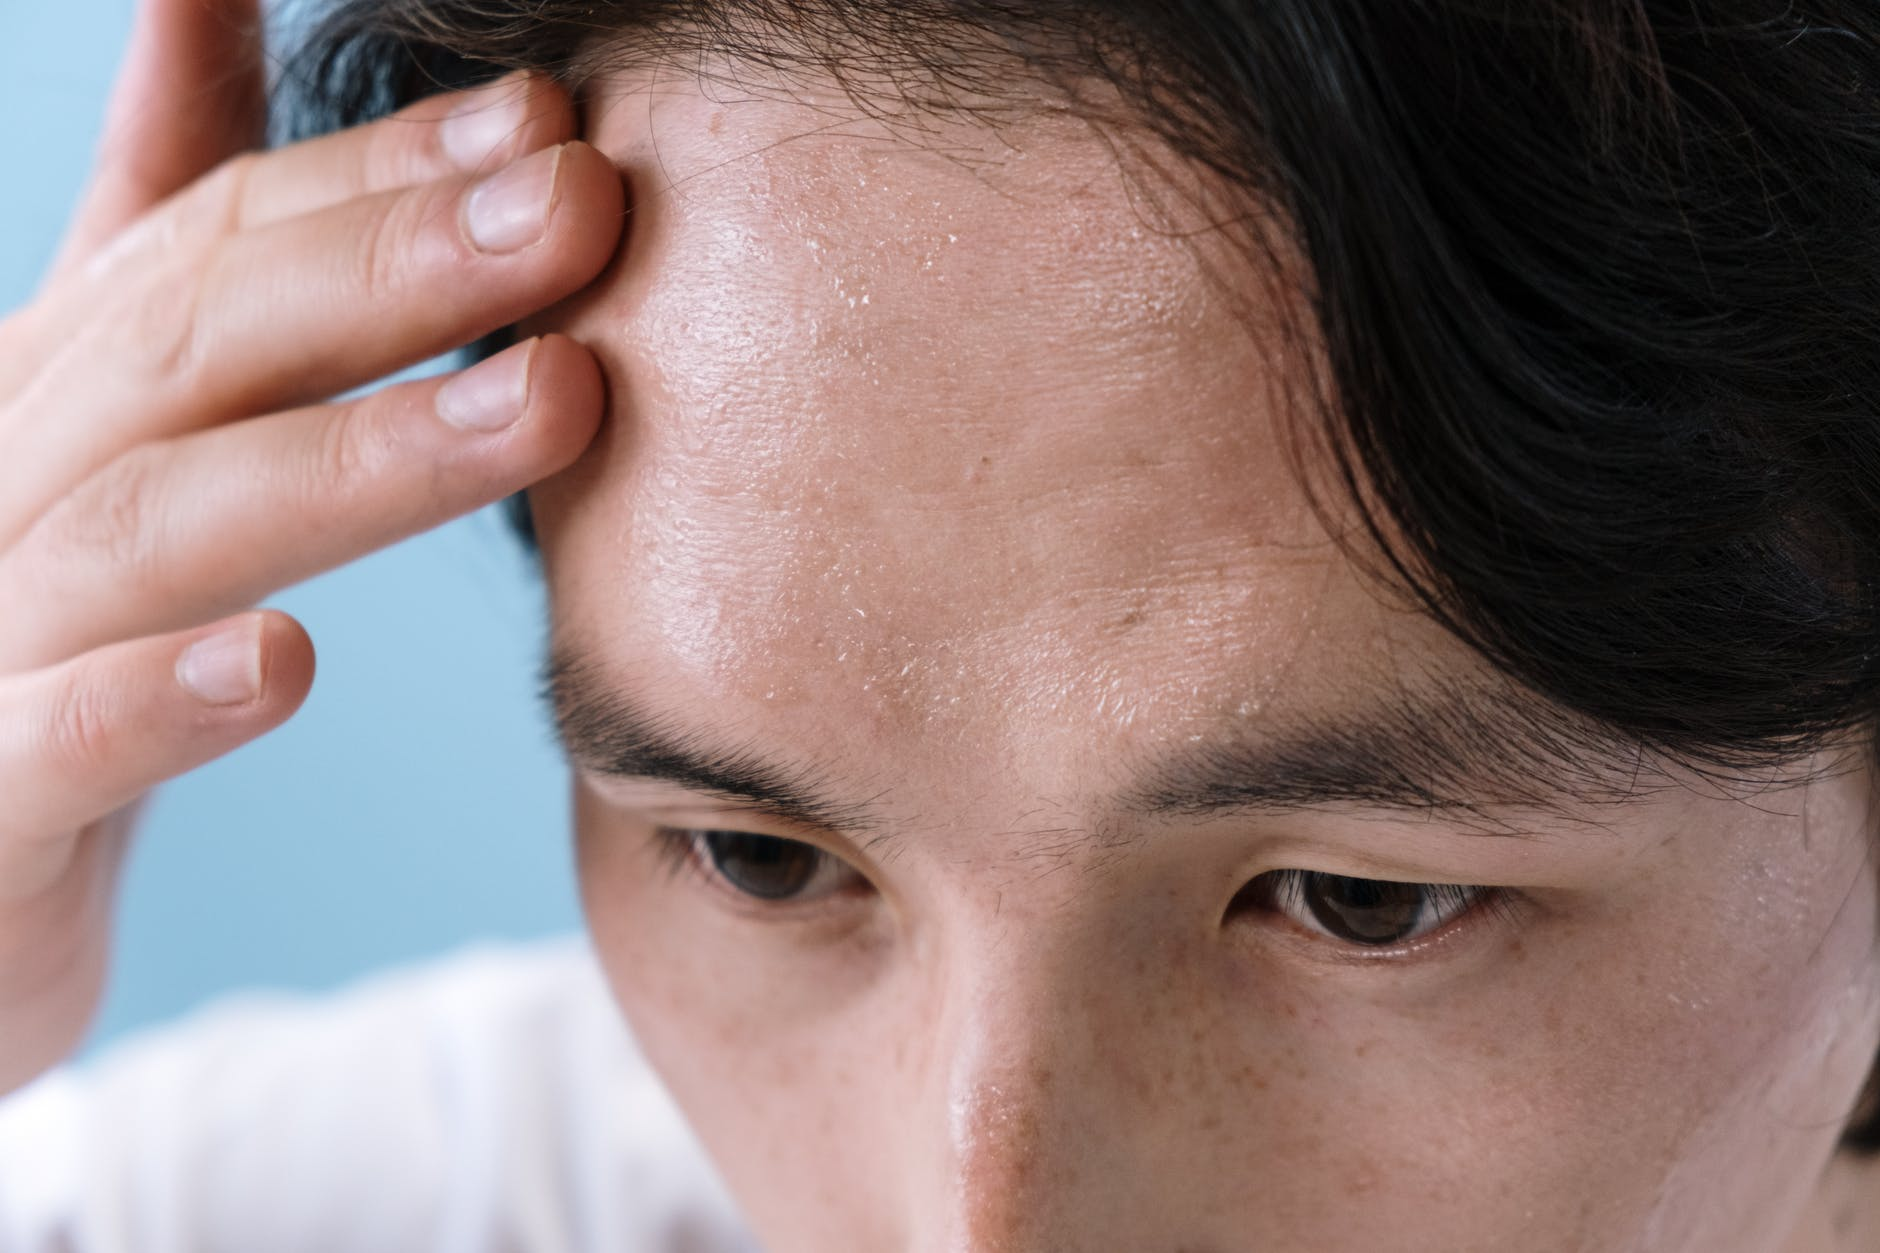 A man with a weak immune system displaying symptoms of headache